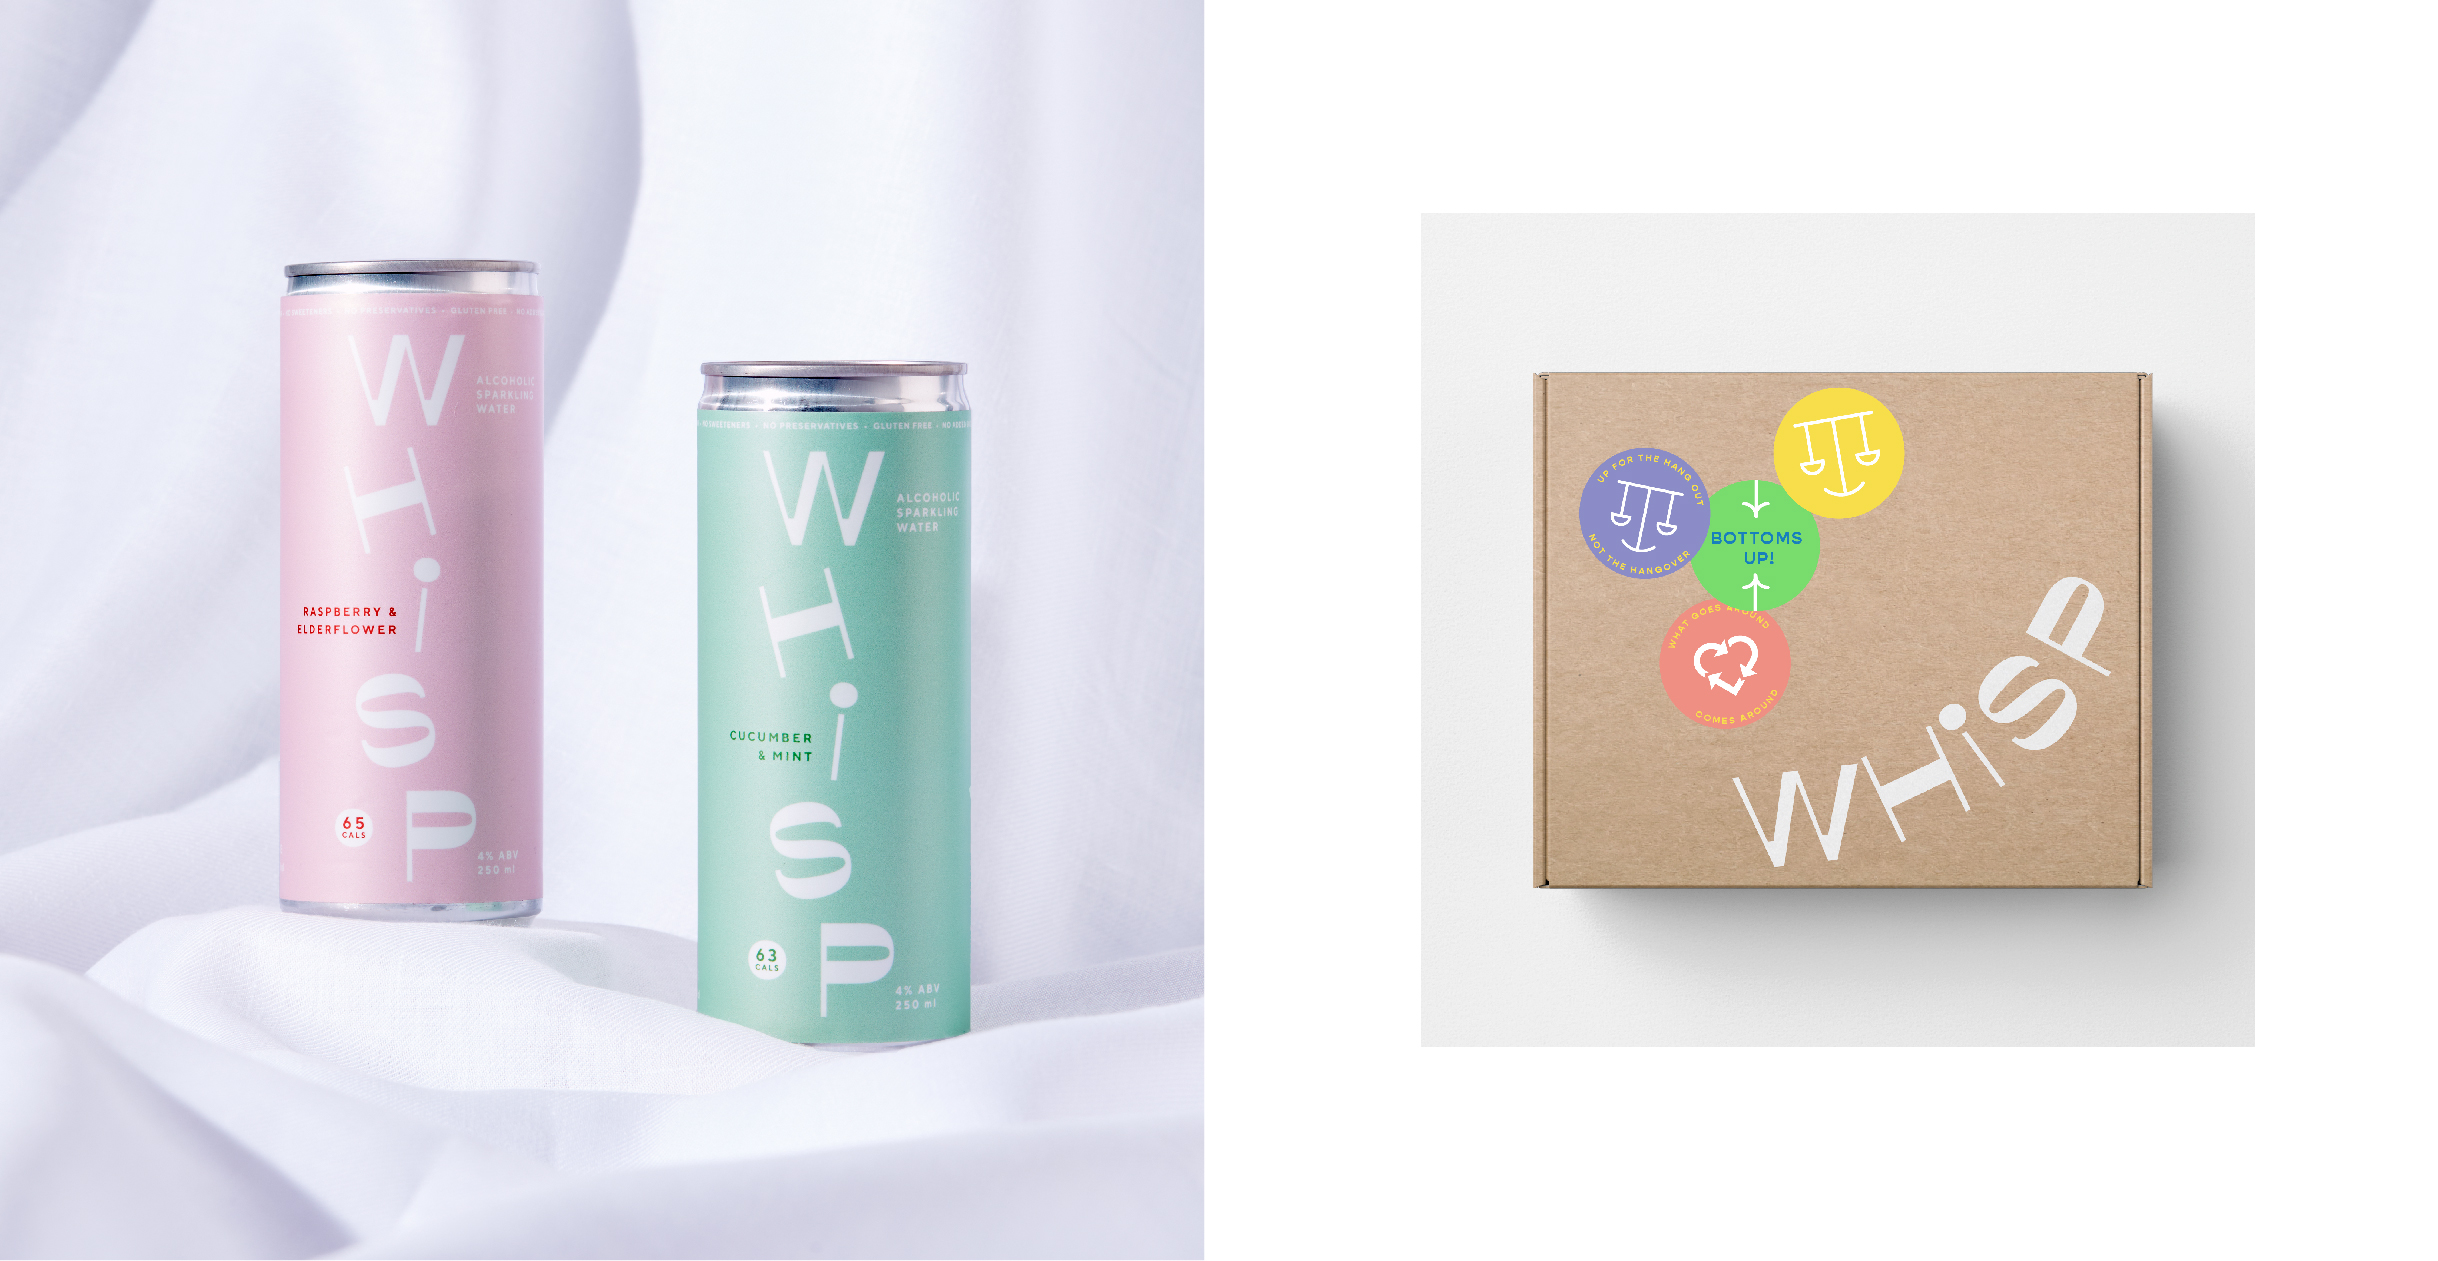 Whisp cans and packaging